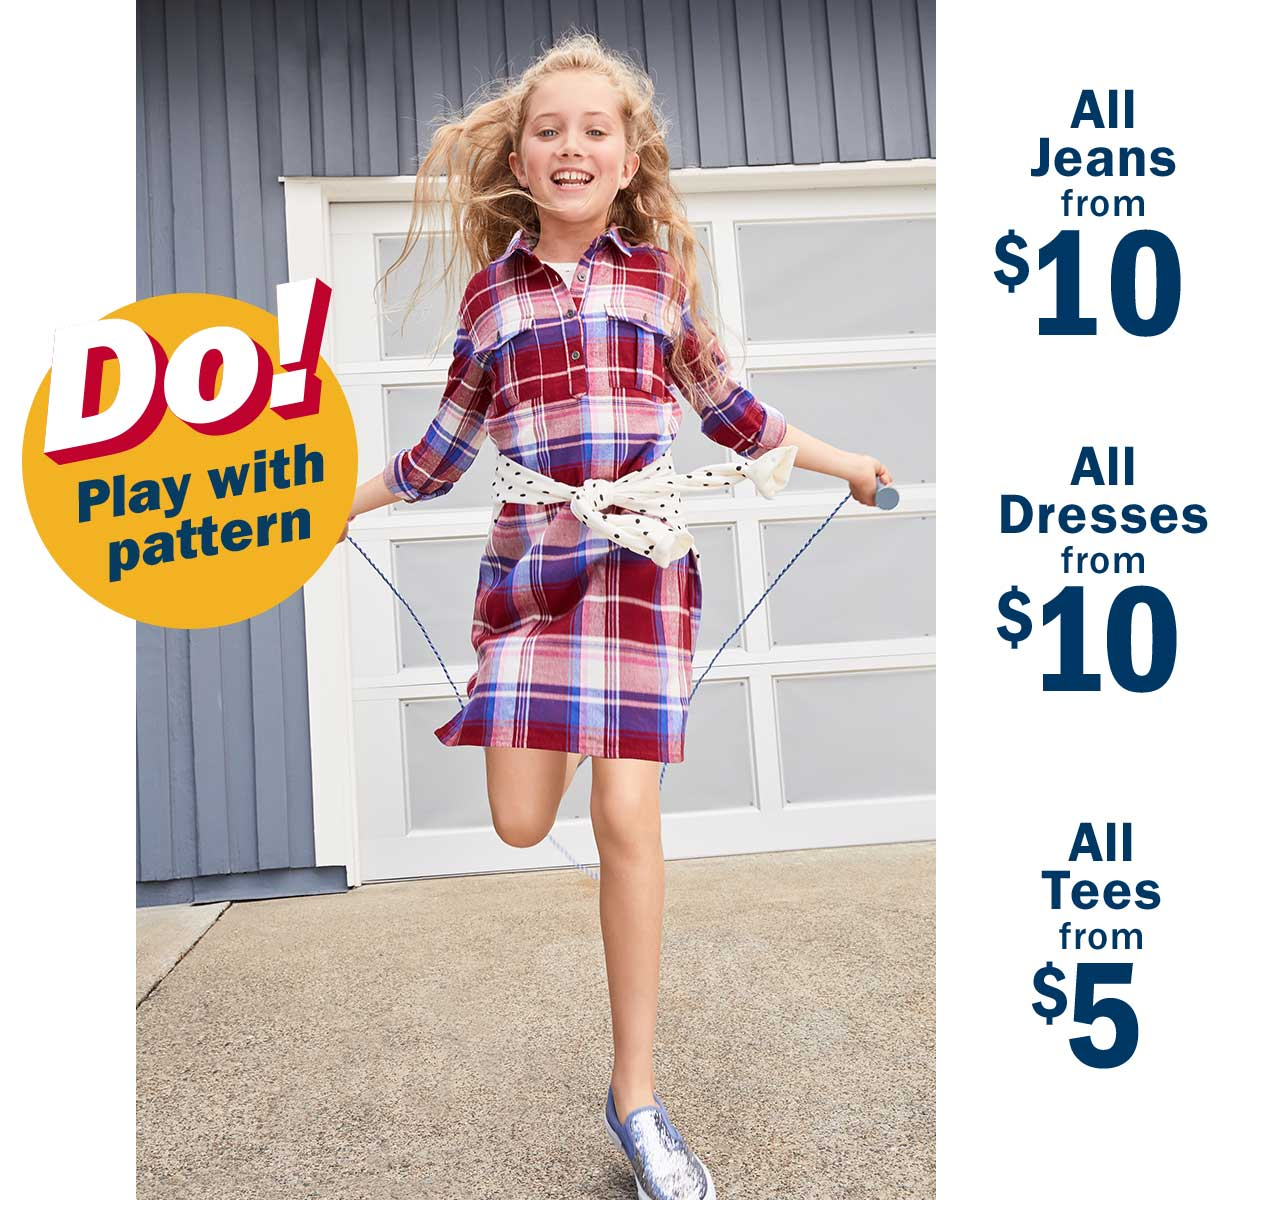 All Jeans from $10   All Dresses from $10   All Tees from $5